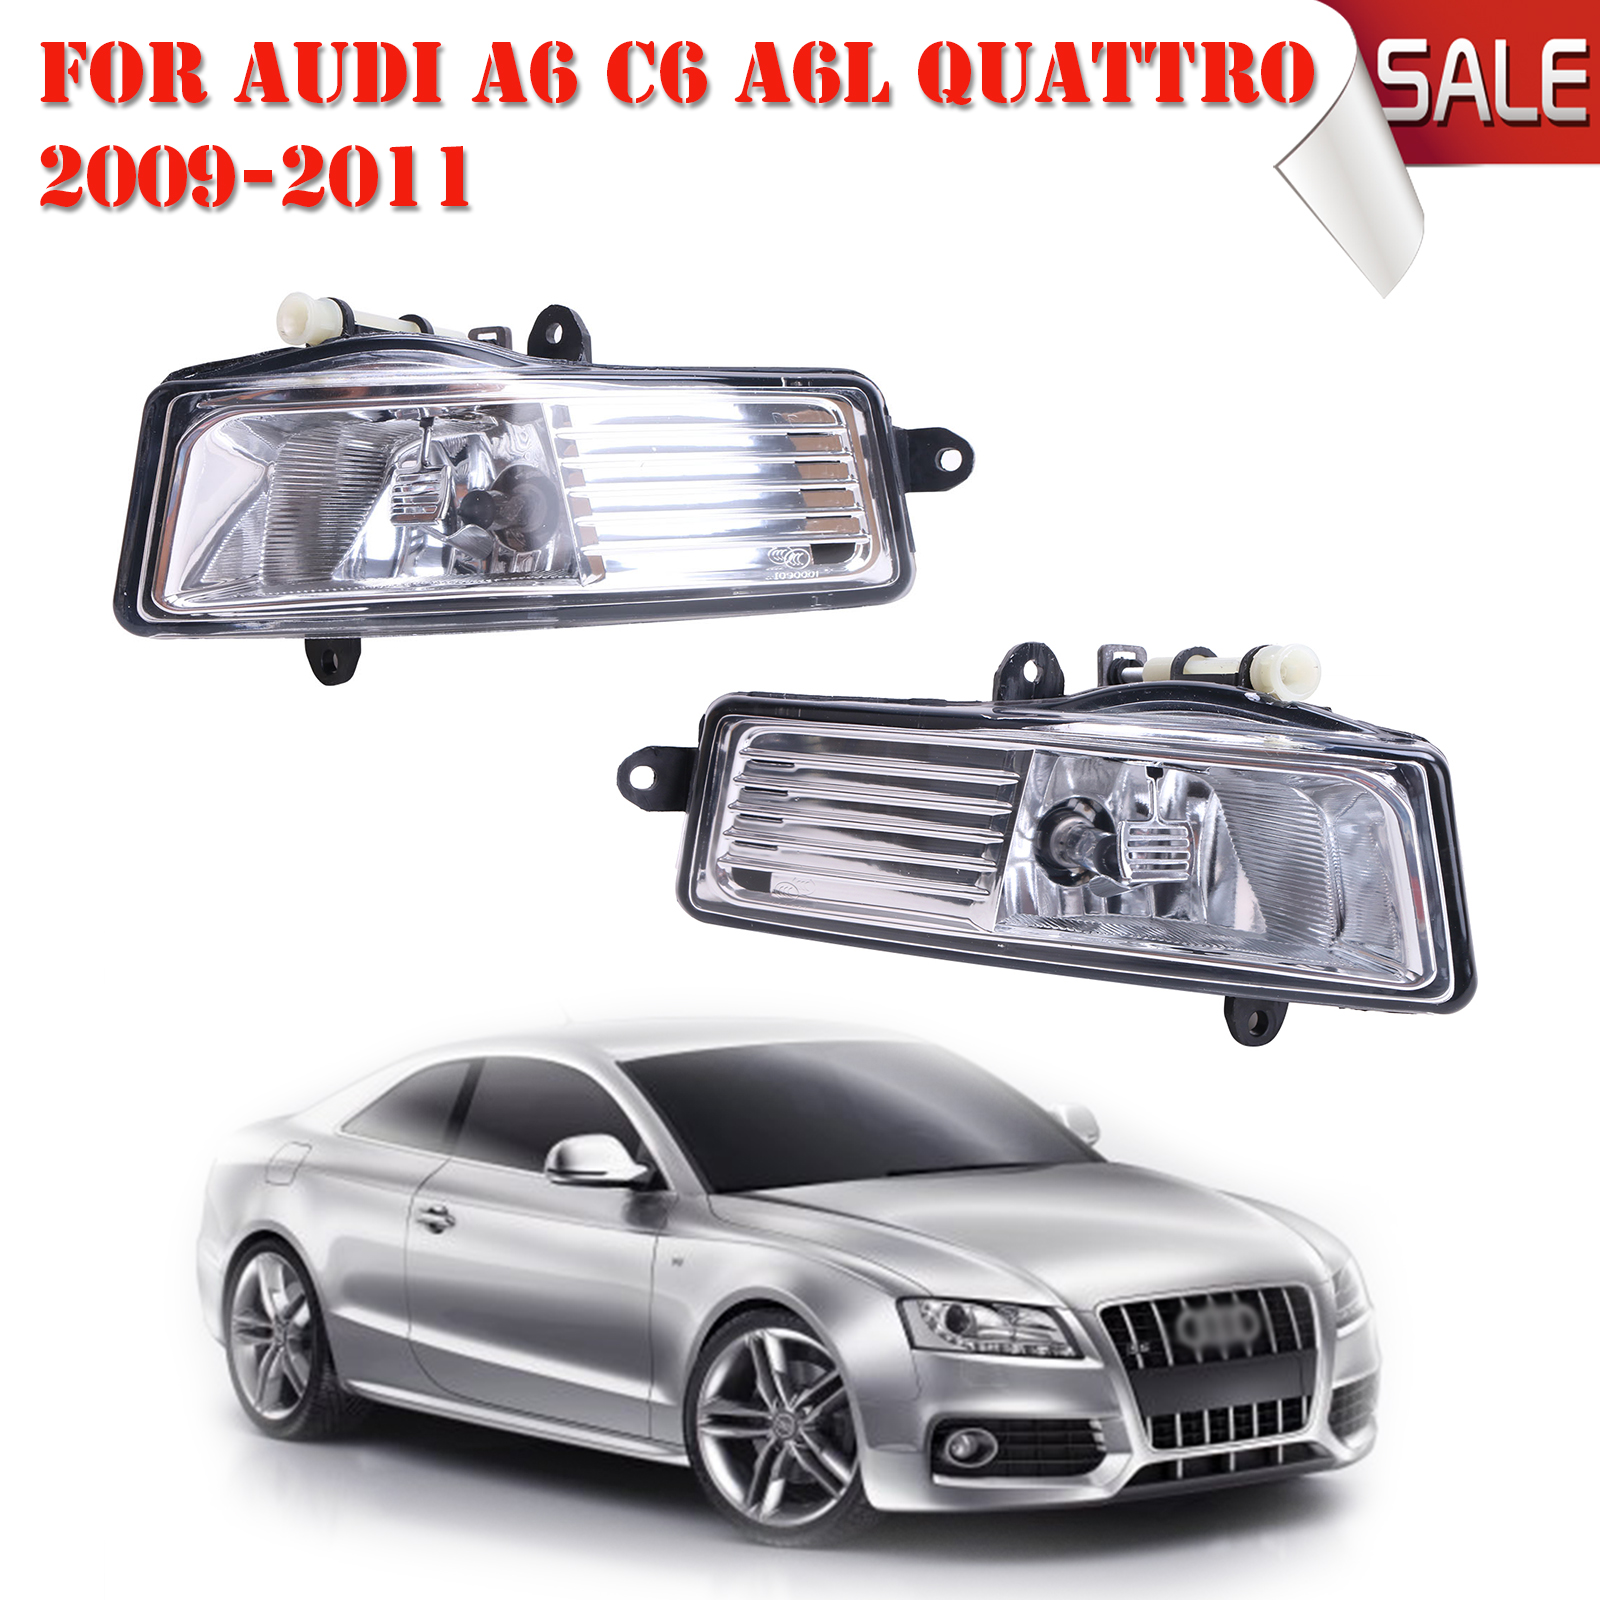 1 Pair Front Fog Lights Foglamps Set For Audi A6 C6 A6L Quattro 2009 2010 2011 4FD941699A + 4FD9416700A Car-Styling P313-F // 0001108175 0986018340 458211 new starter for audi a4 a6 quattro volkswagen passat 2 8 3 0 4 2 l